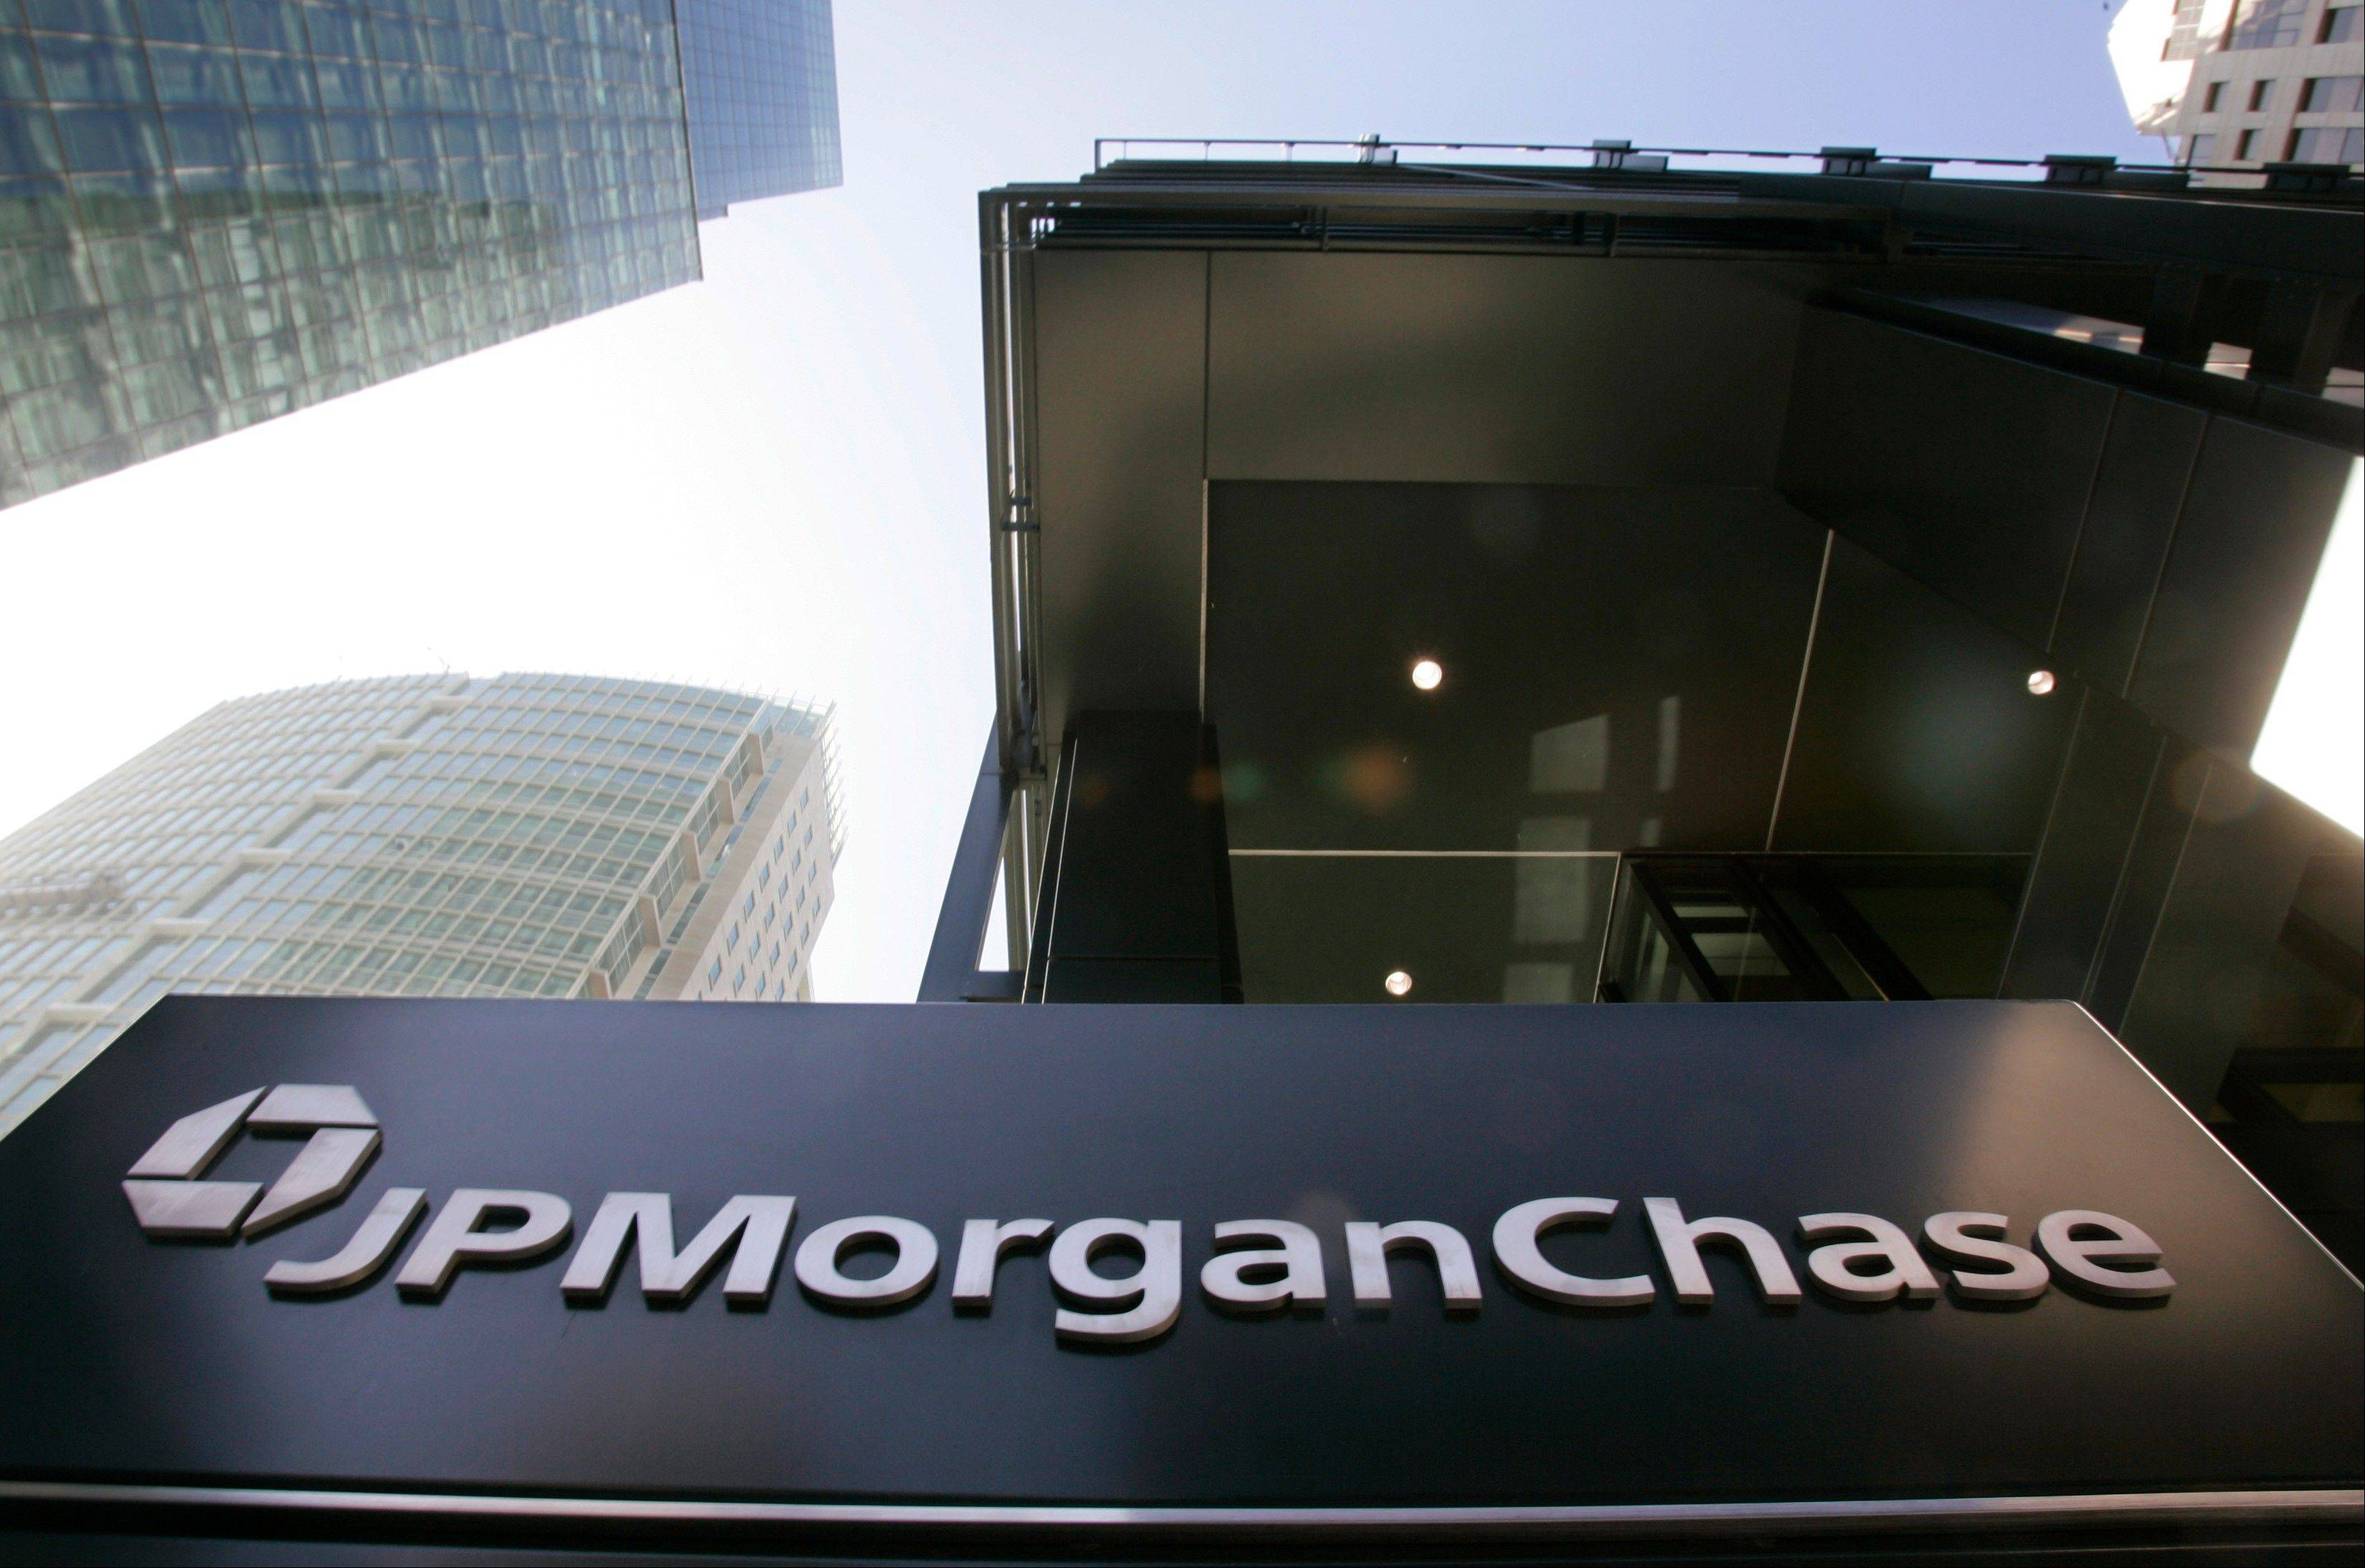 JPMorgan Chase & Co. has agreed to pay a $100 million penalty and admitted that it �recklessly� distorted prices during a series of London trades that ultimately cost the bank $6 billion in losses.